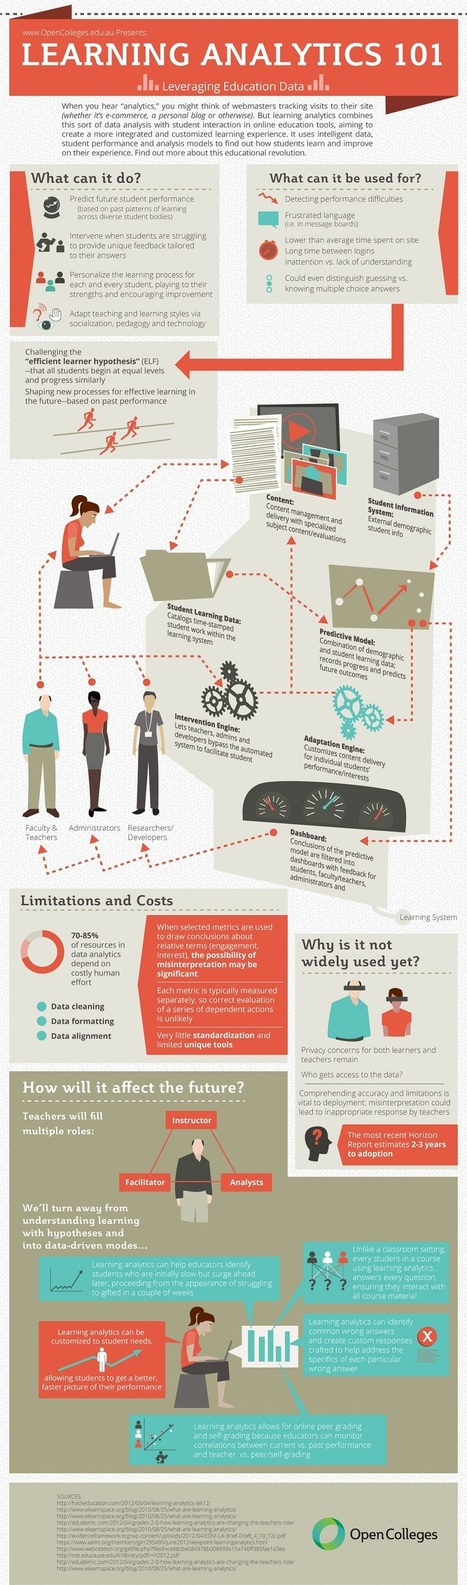 Learning Analytics 101 [INFOGRAPHIC]   Learning Technologies (curated by MF)   Scoop.it